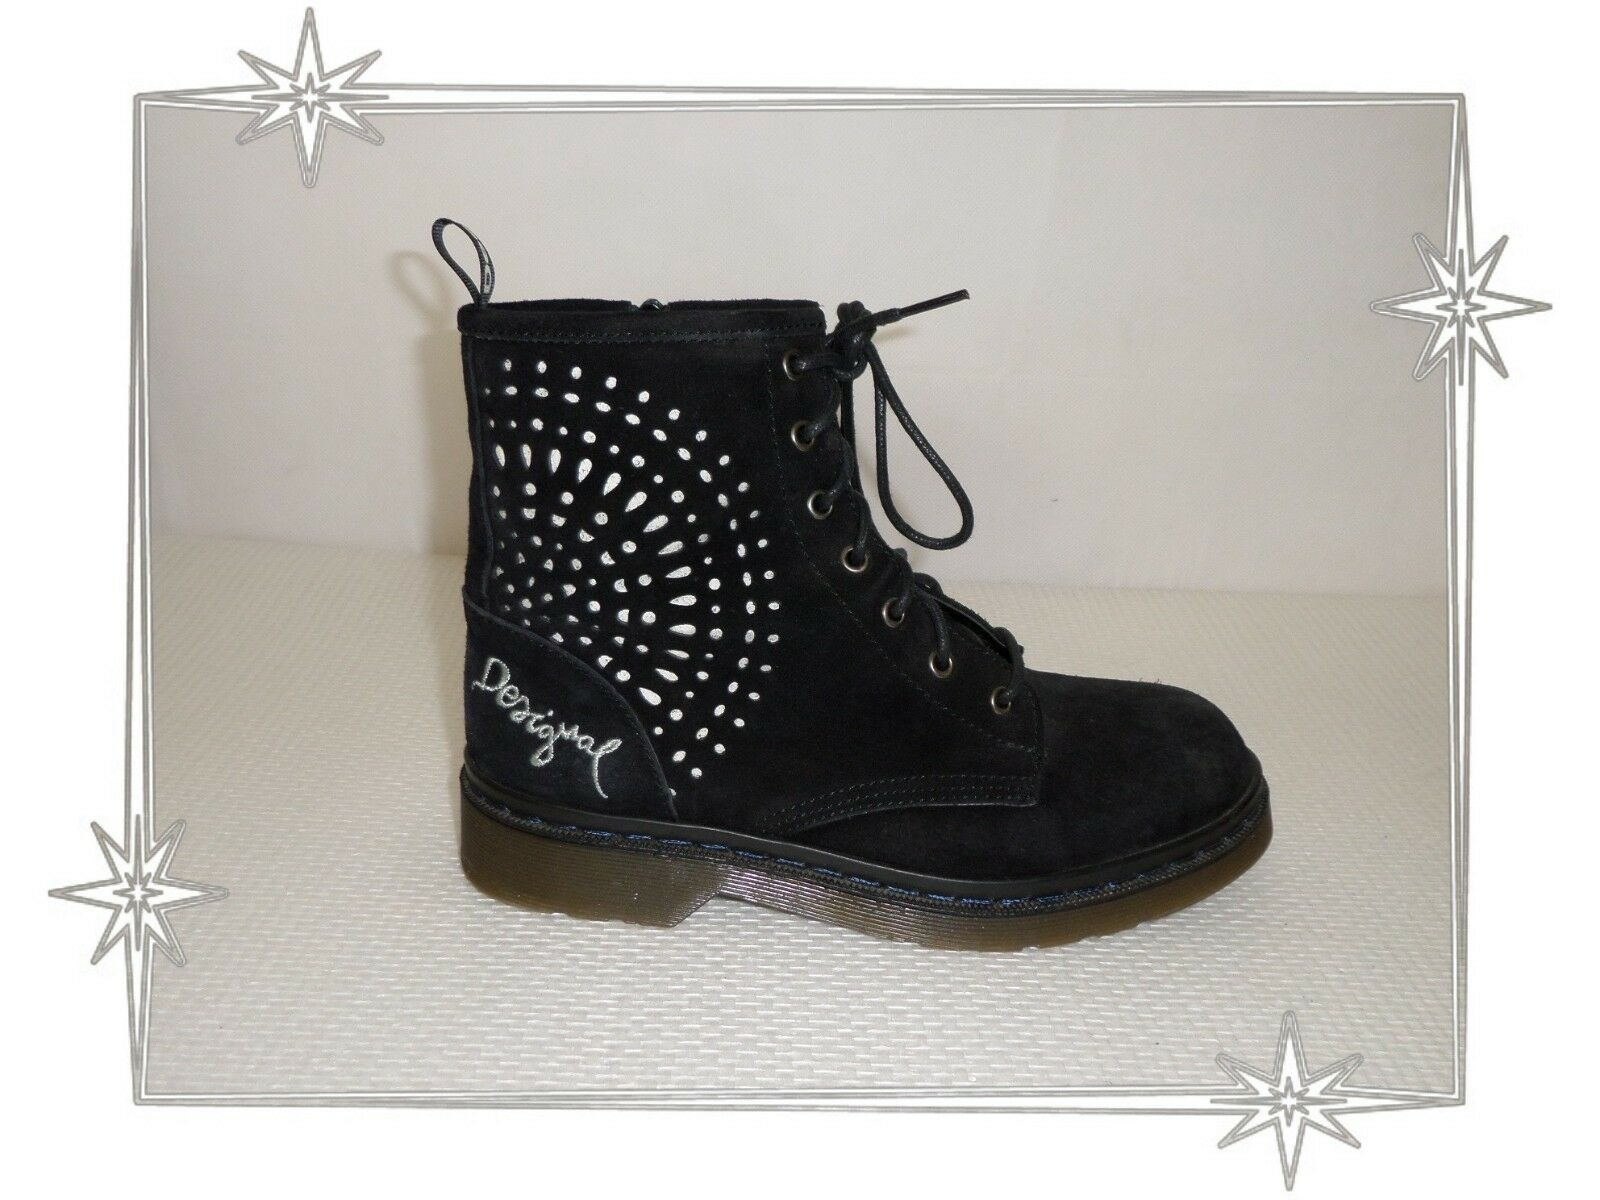 D  -  Bottines botas Fantaisies negroes  Daim Desigual Pointure 38